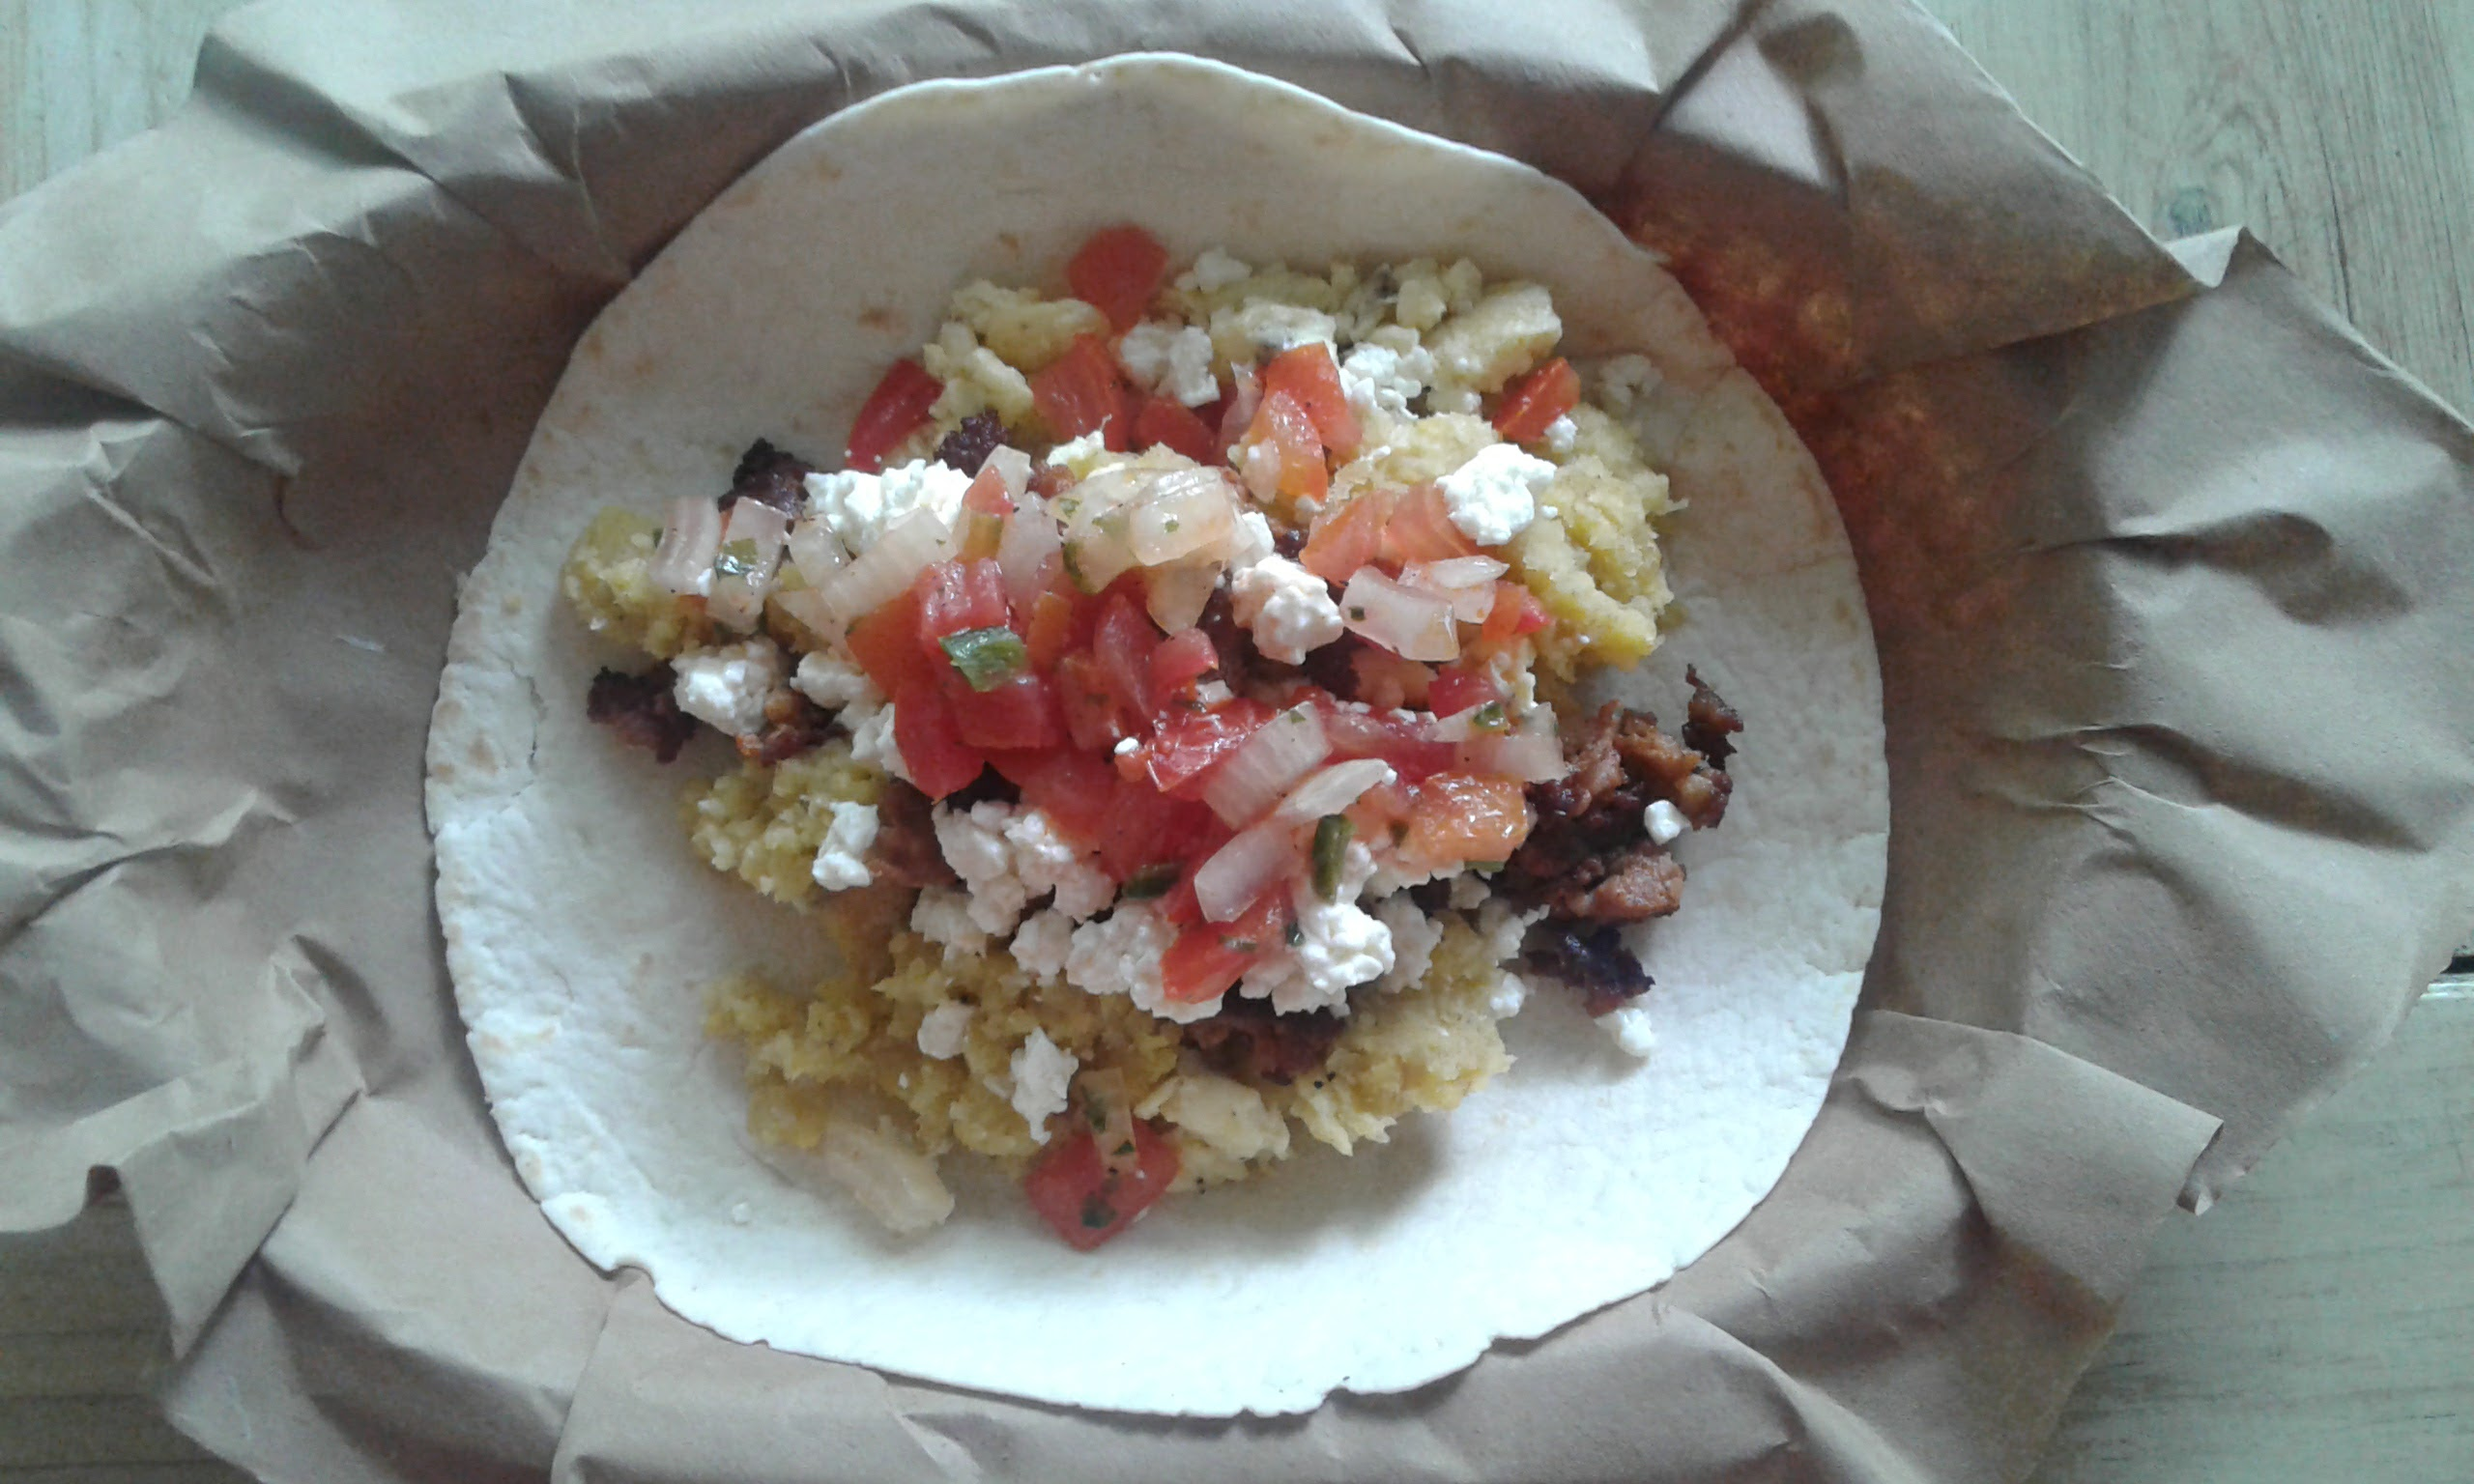 Platano Mofong Hash, Egg and Cheese Taco with Spicy Chorizo and Pico de Gallo